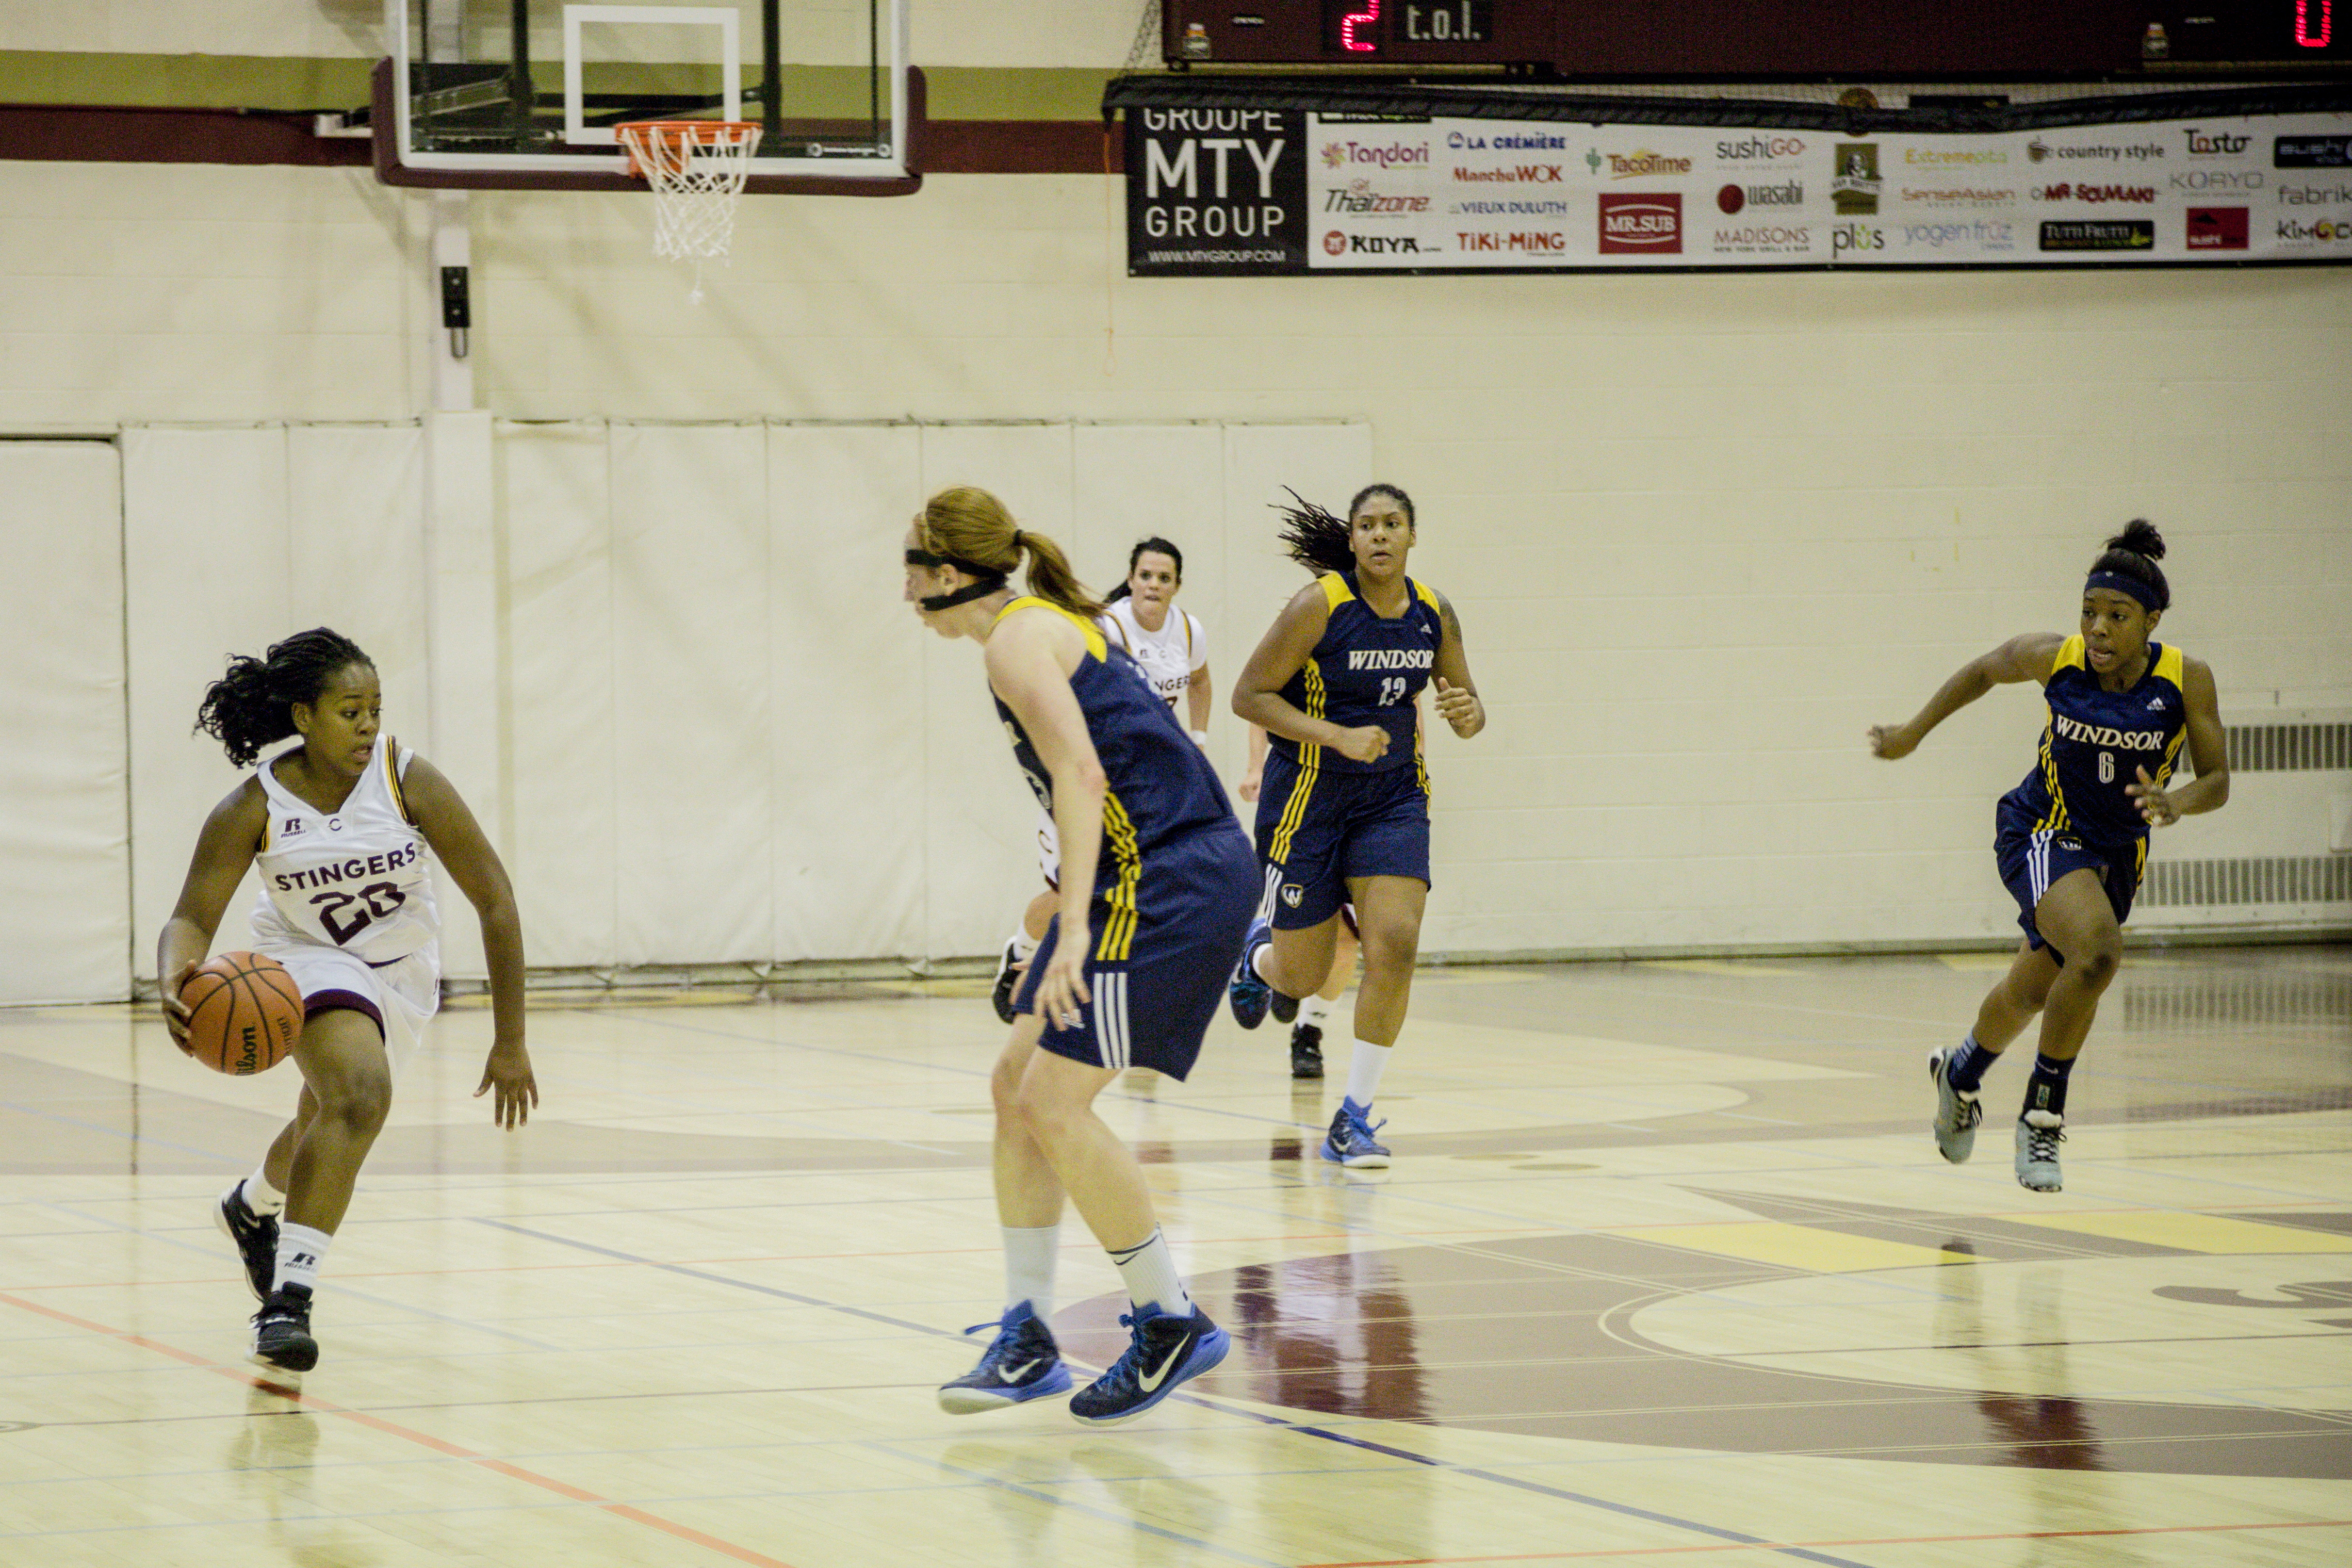 Stingers guard Latifah Roach dribbling up the court against their Windsor Lancer Opponents in Friday's game at Loyola. Photo by Marie-Pierre Savard.